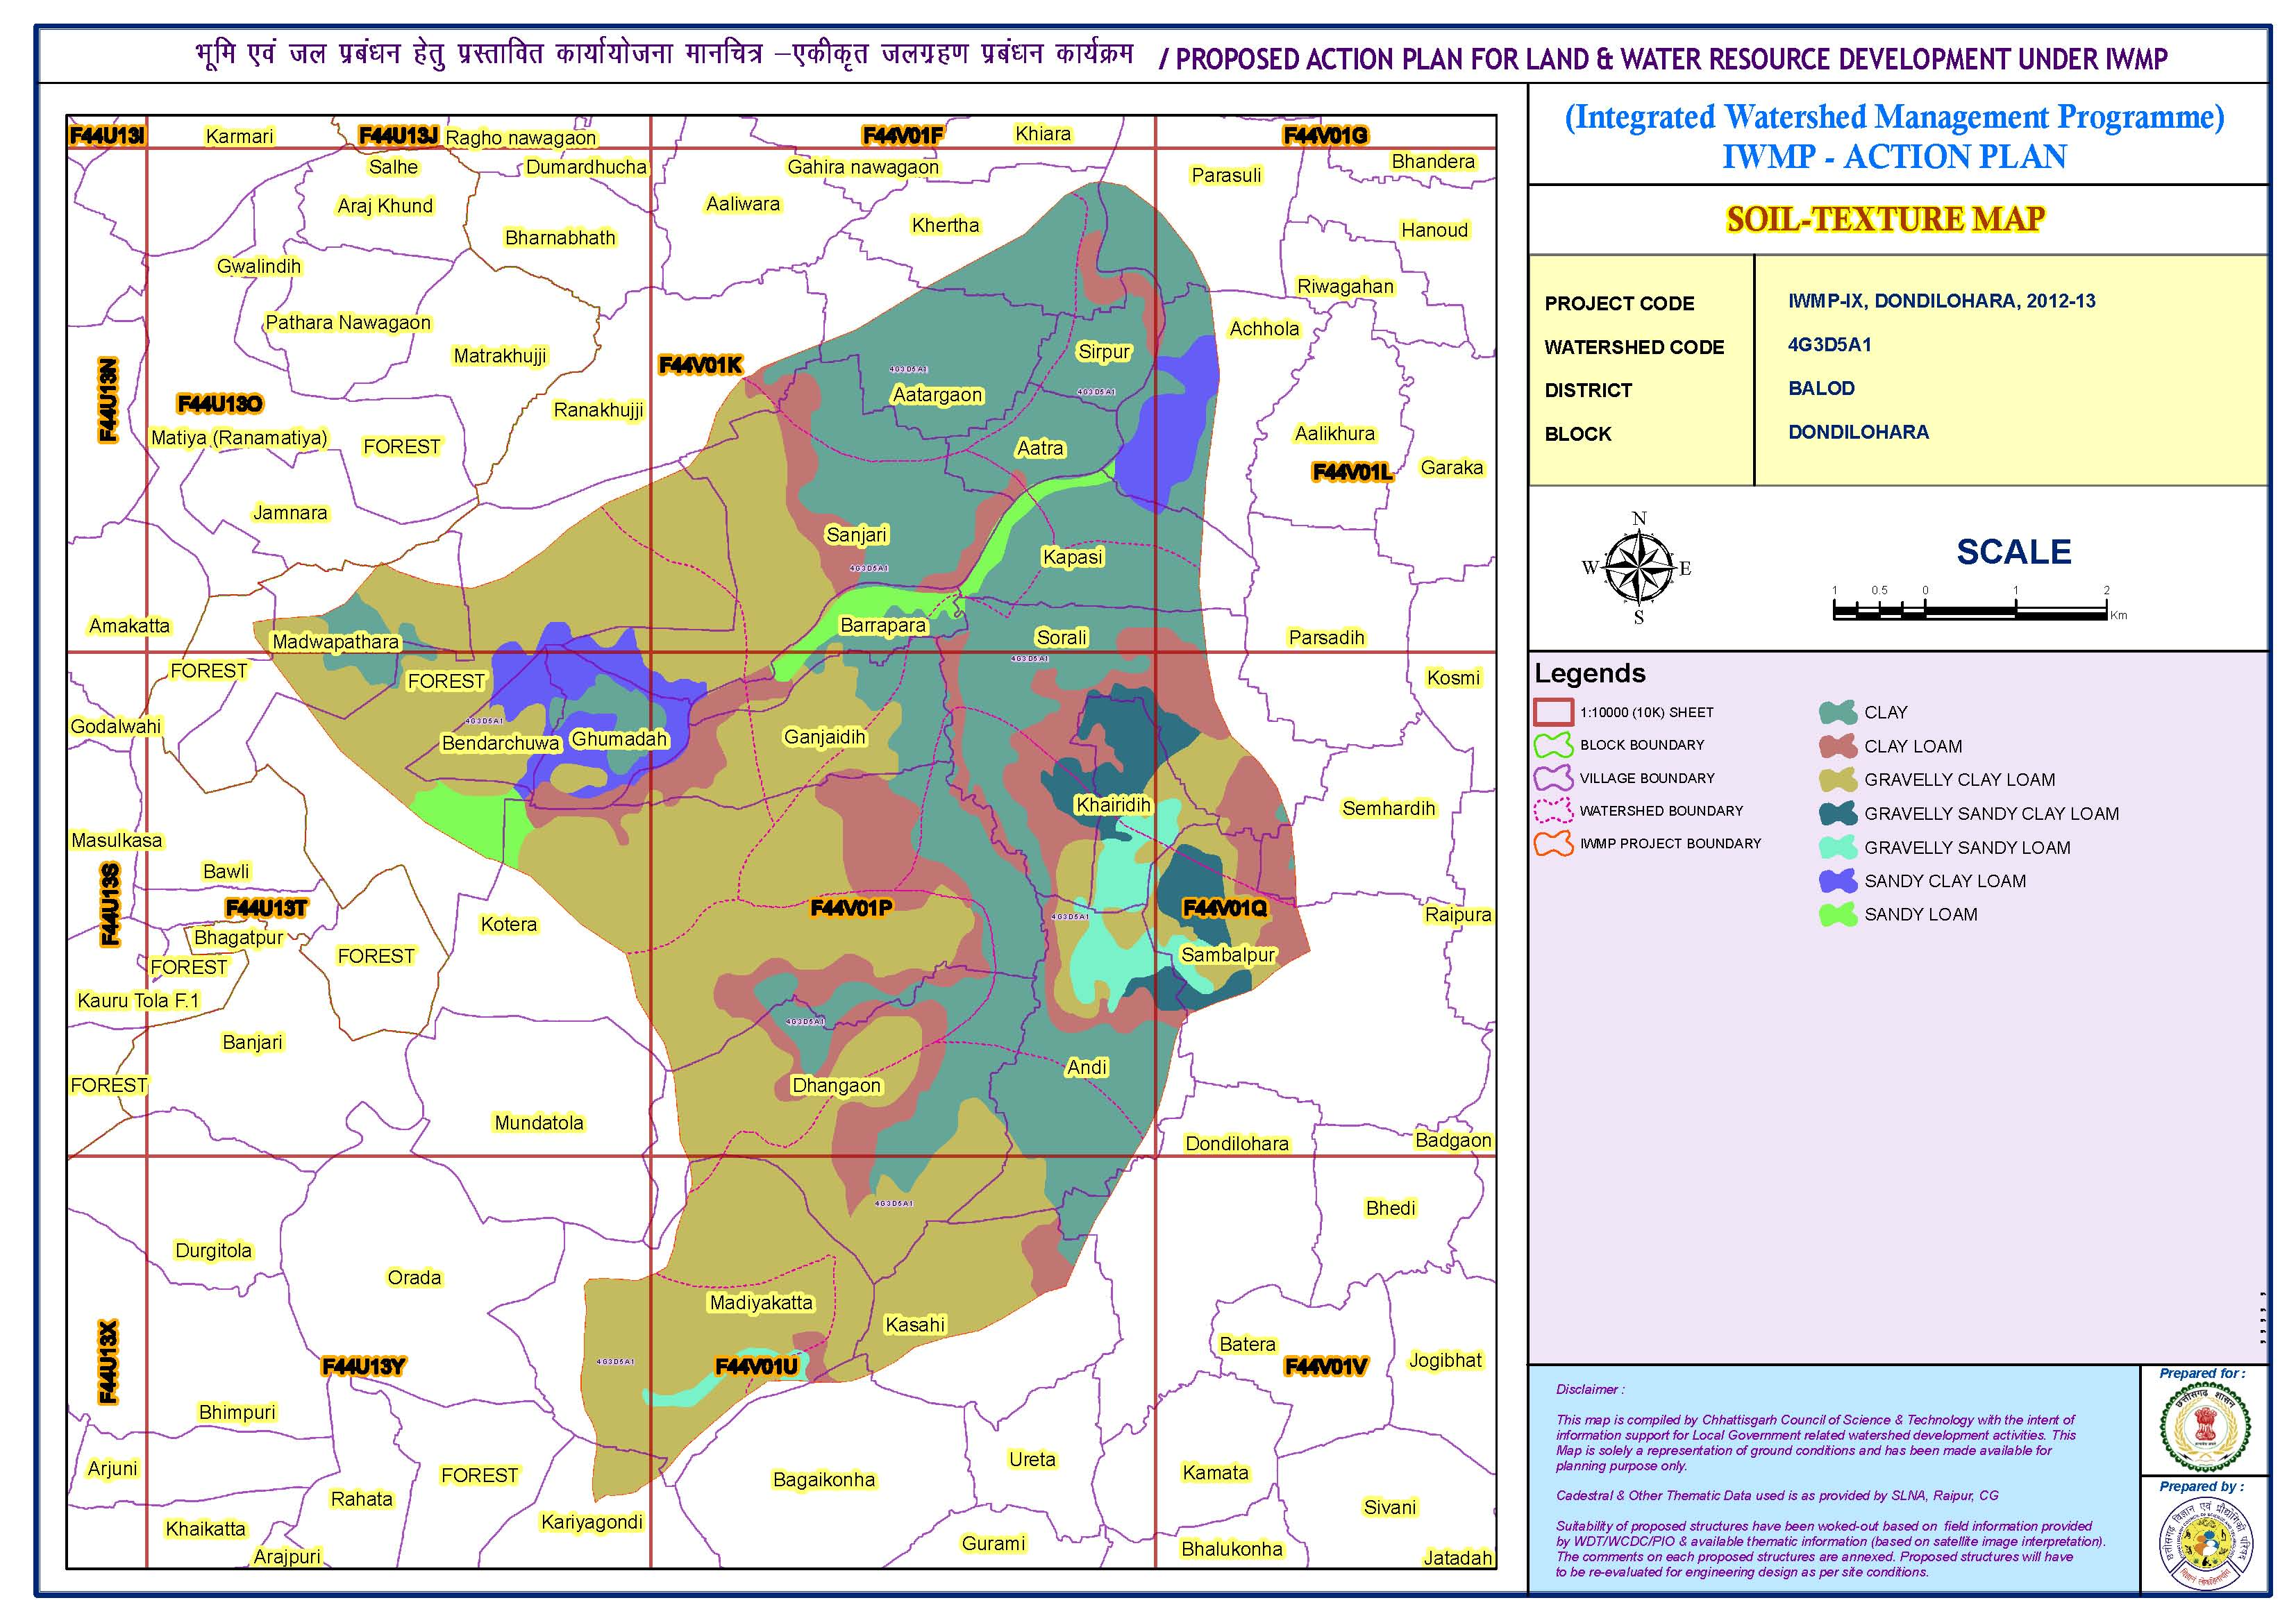 Integrated watershed management  (Soil-texture map)